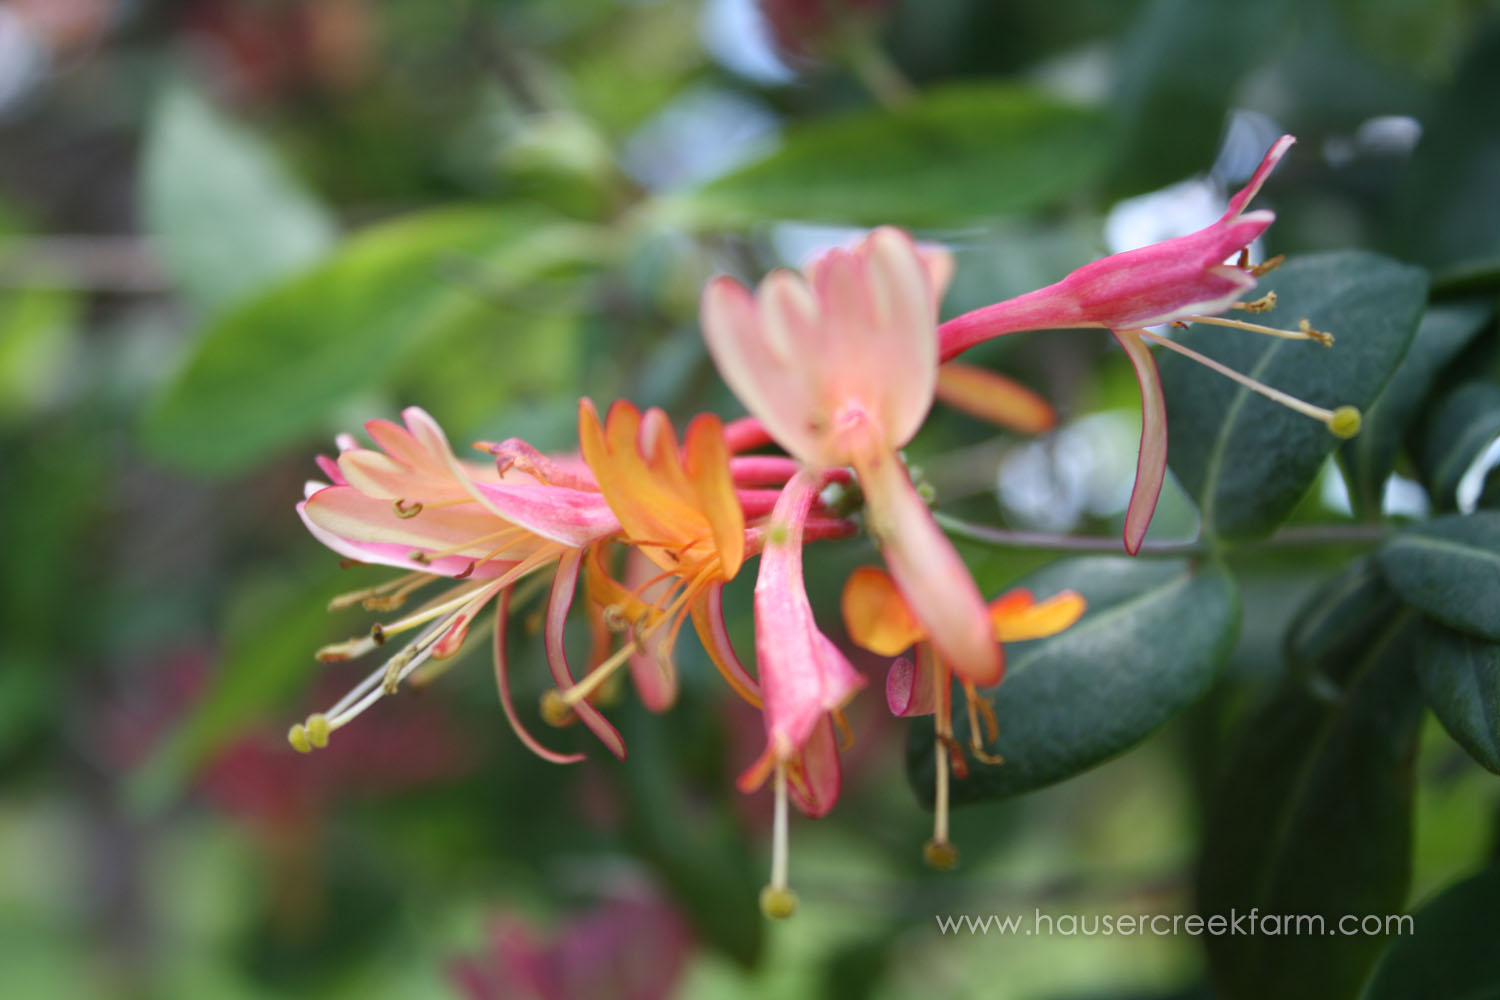 Honeysuckle with hints of pink, orange, yellow, and white